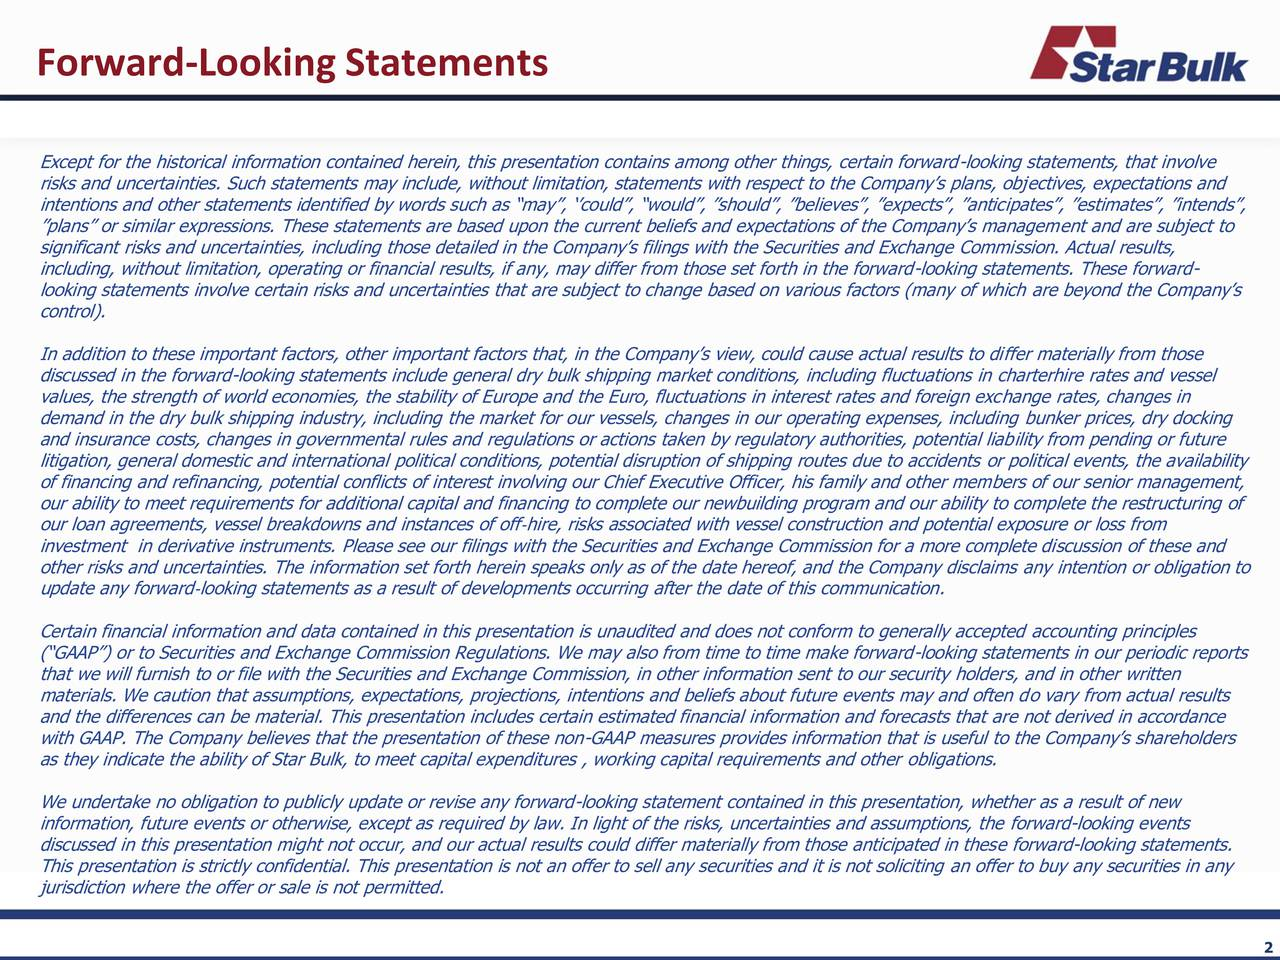 Except for the historical information contained herein, this presentation contains among other things, certain forward-looking statements, that involve risks and uncertainties. Such statements may include, without limitation, statements with respect to the Companys plans, objectives, expectations and intentions and other statements identified by words such as may, could, would, should, believes, expects, anticipates, estimates, intends, plans or similar expressions. These statements are based upon the current beliefs and expectations of the Companys management and are subject to significant risks and uncertainties, including those detailed in the Companys filings with the Securities and Exchange Commission. Actual results, including, without limitation, operating or financial results, if any, may differ from those set forth in the forward-looking statements. These forward- looking statements involve certain risks and uncertainties that are subject to change based on various factors (many of which are beyond the Companys control). In addition to these important factors, other important factors that, in the Companys view, could cause actual results to differ materially from those discussed in the forward-looking statements include general dry bulk shipping market conditions, including fluctuations in charterhire rates and vessel values, the strength of world economies, the stability of Europe and the Euro, fluctuations in interest rates and foreign exchange rates, changes in demand in the dry bulk shipping industry, including the market for our vessels, changes in our operating expenses, including bunker prices, dry docking and insurance costs, changes in governmental rules and regulations or actions taken by regulatory authorities, potential liability from pending or future litigation, general domestic and international political conditions, potential disruption of shipping routes due to accidents or political events, the availability of financing and refinancing, po